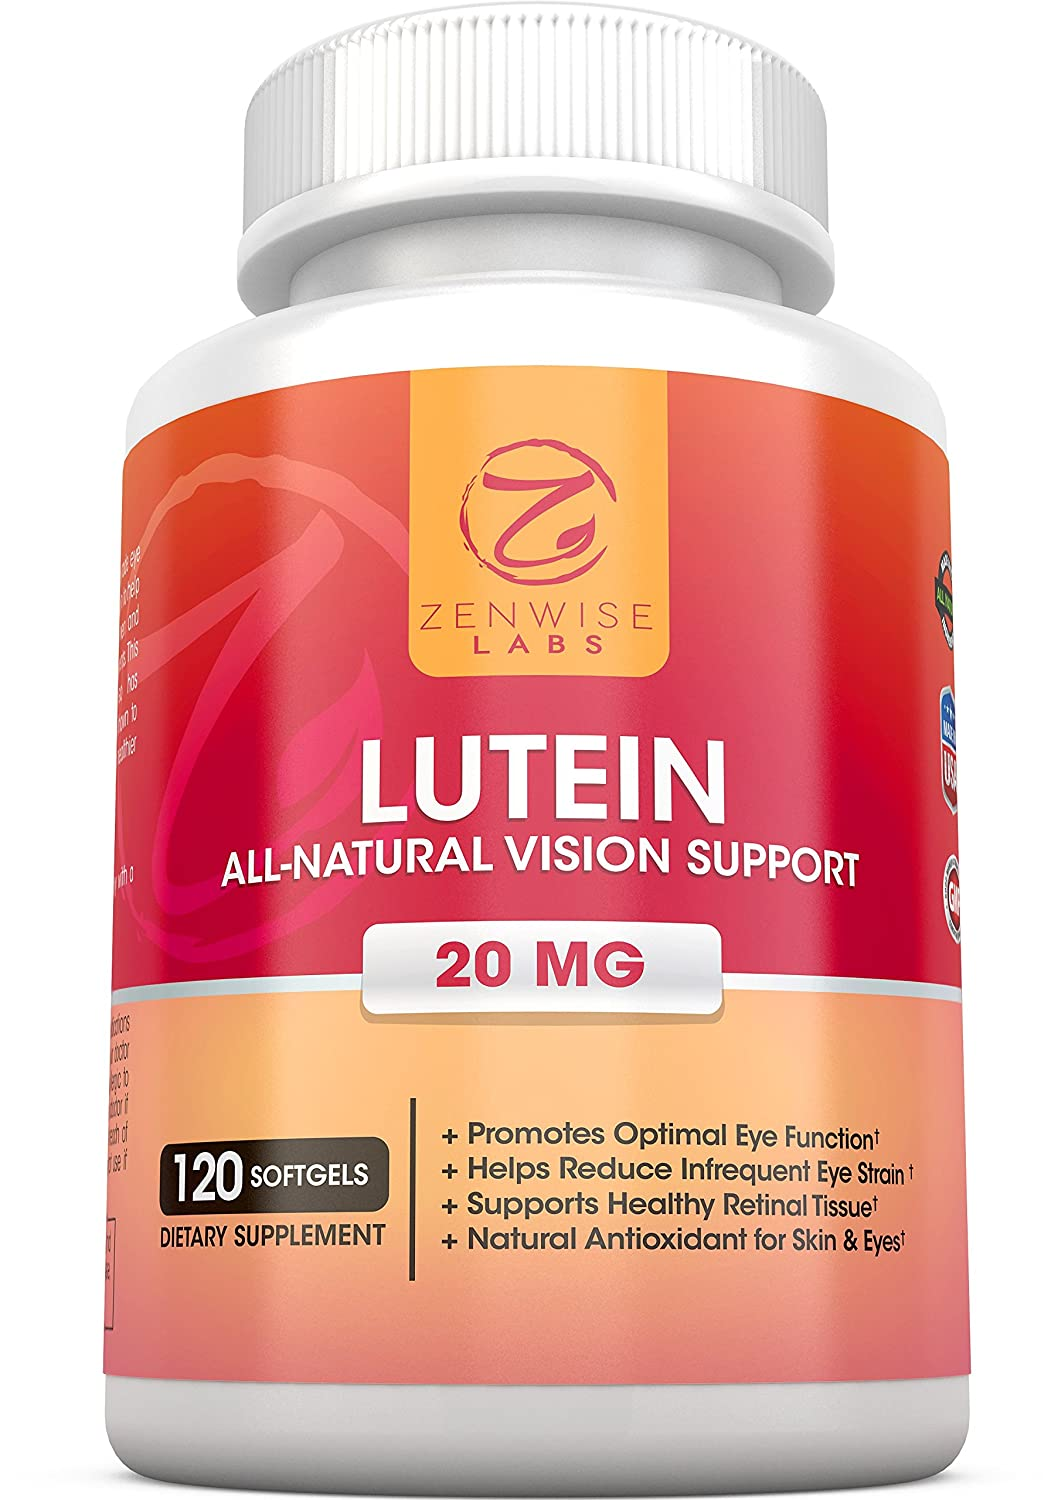 Lutein With Optilut 10 Mg: Lutein 20mg Vitamin Supplement